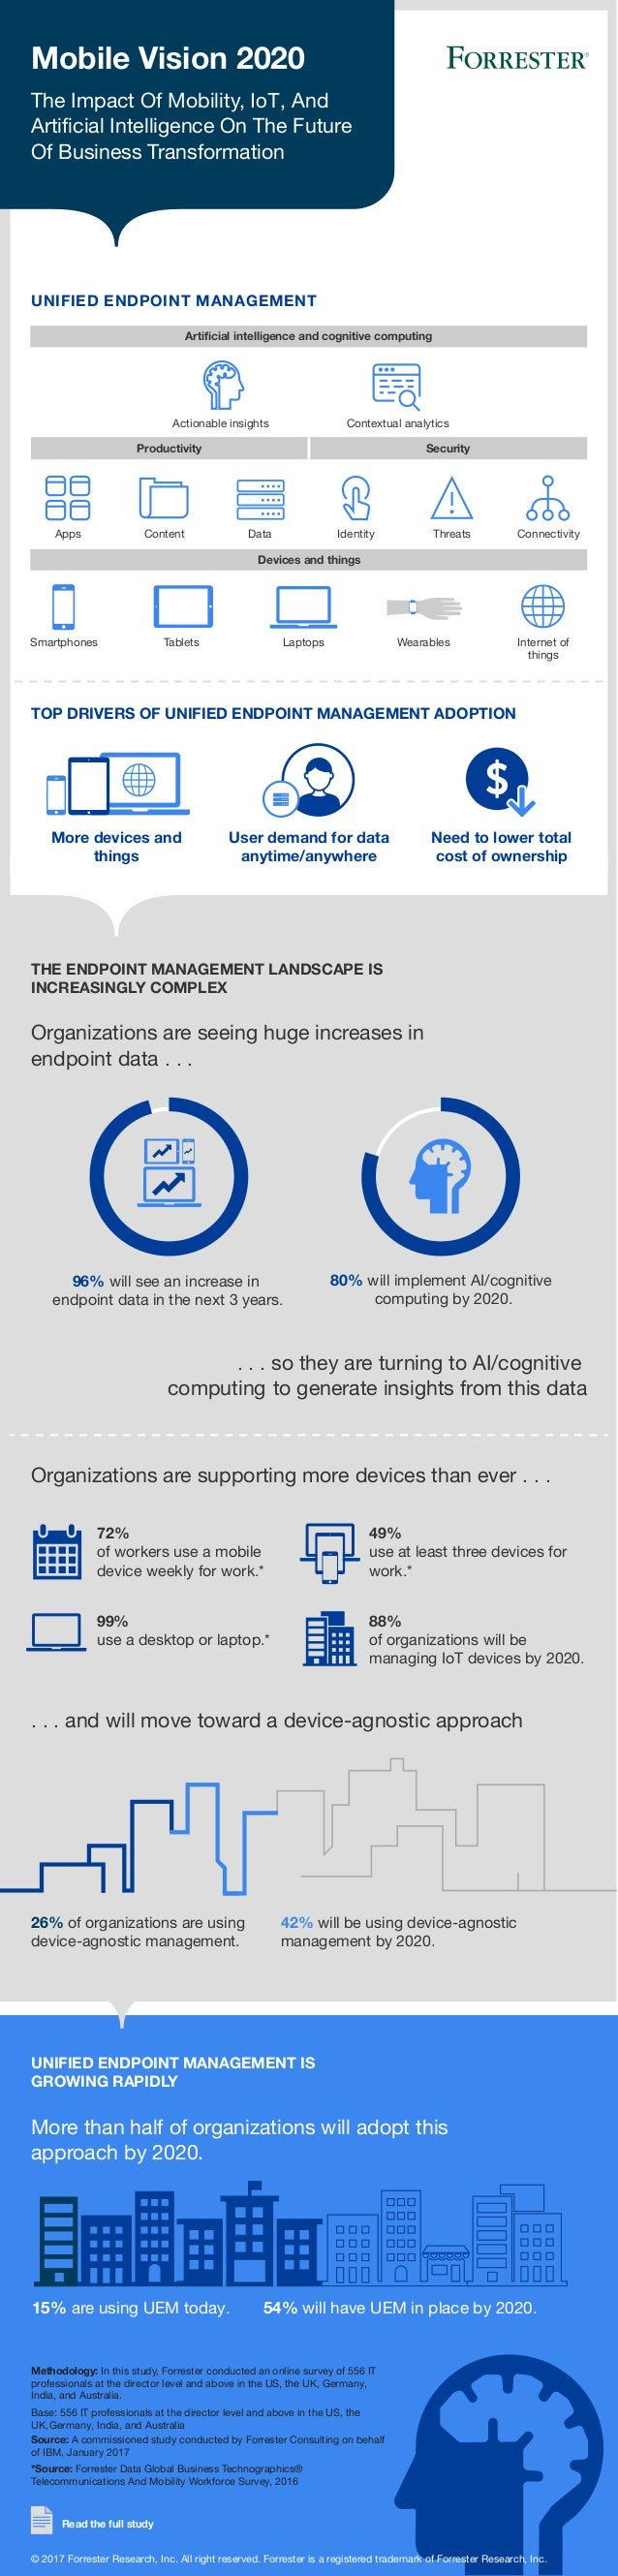 More devices and things Mobile Vision 2020 UNIFIED ENDPOINT MANAGEMENT TOP DRIVERS OF UNIFIED ENDPOINT MANAGEMENT ADOPTION...